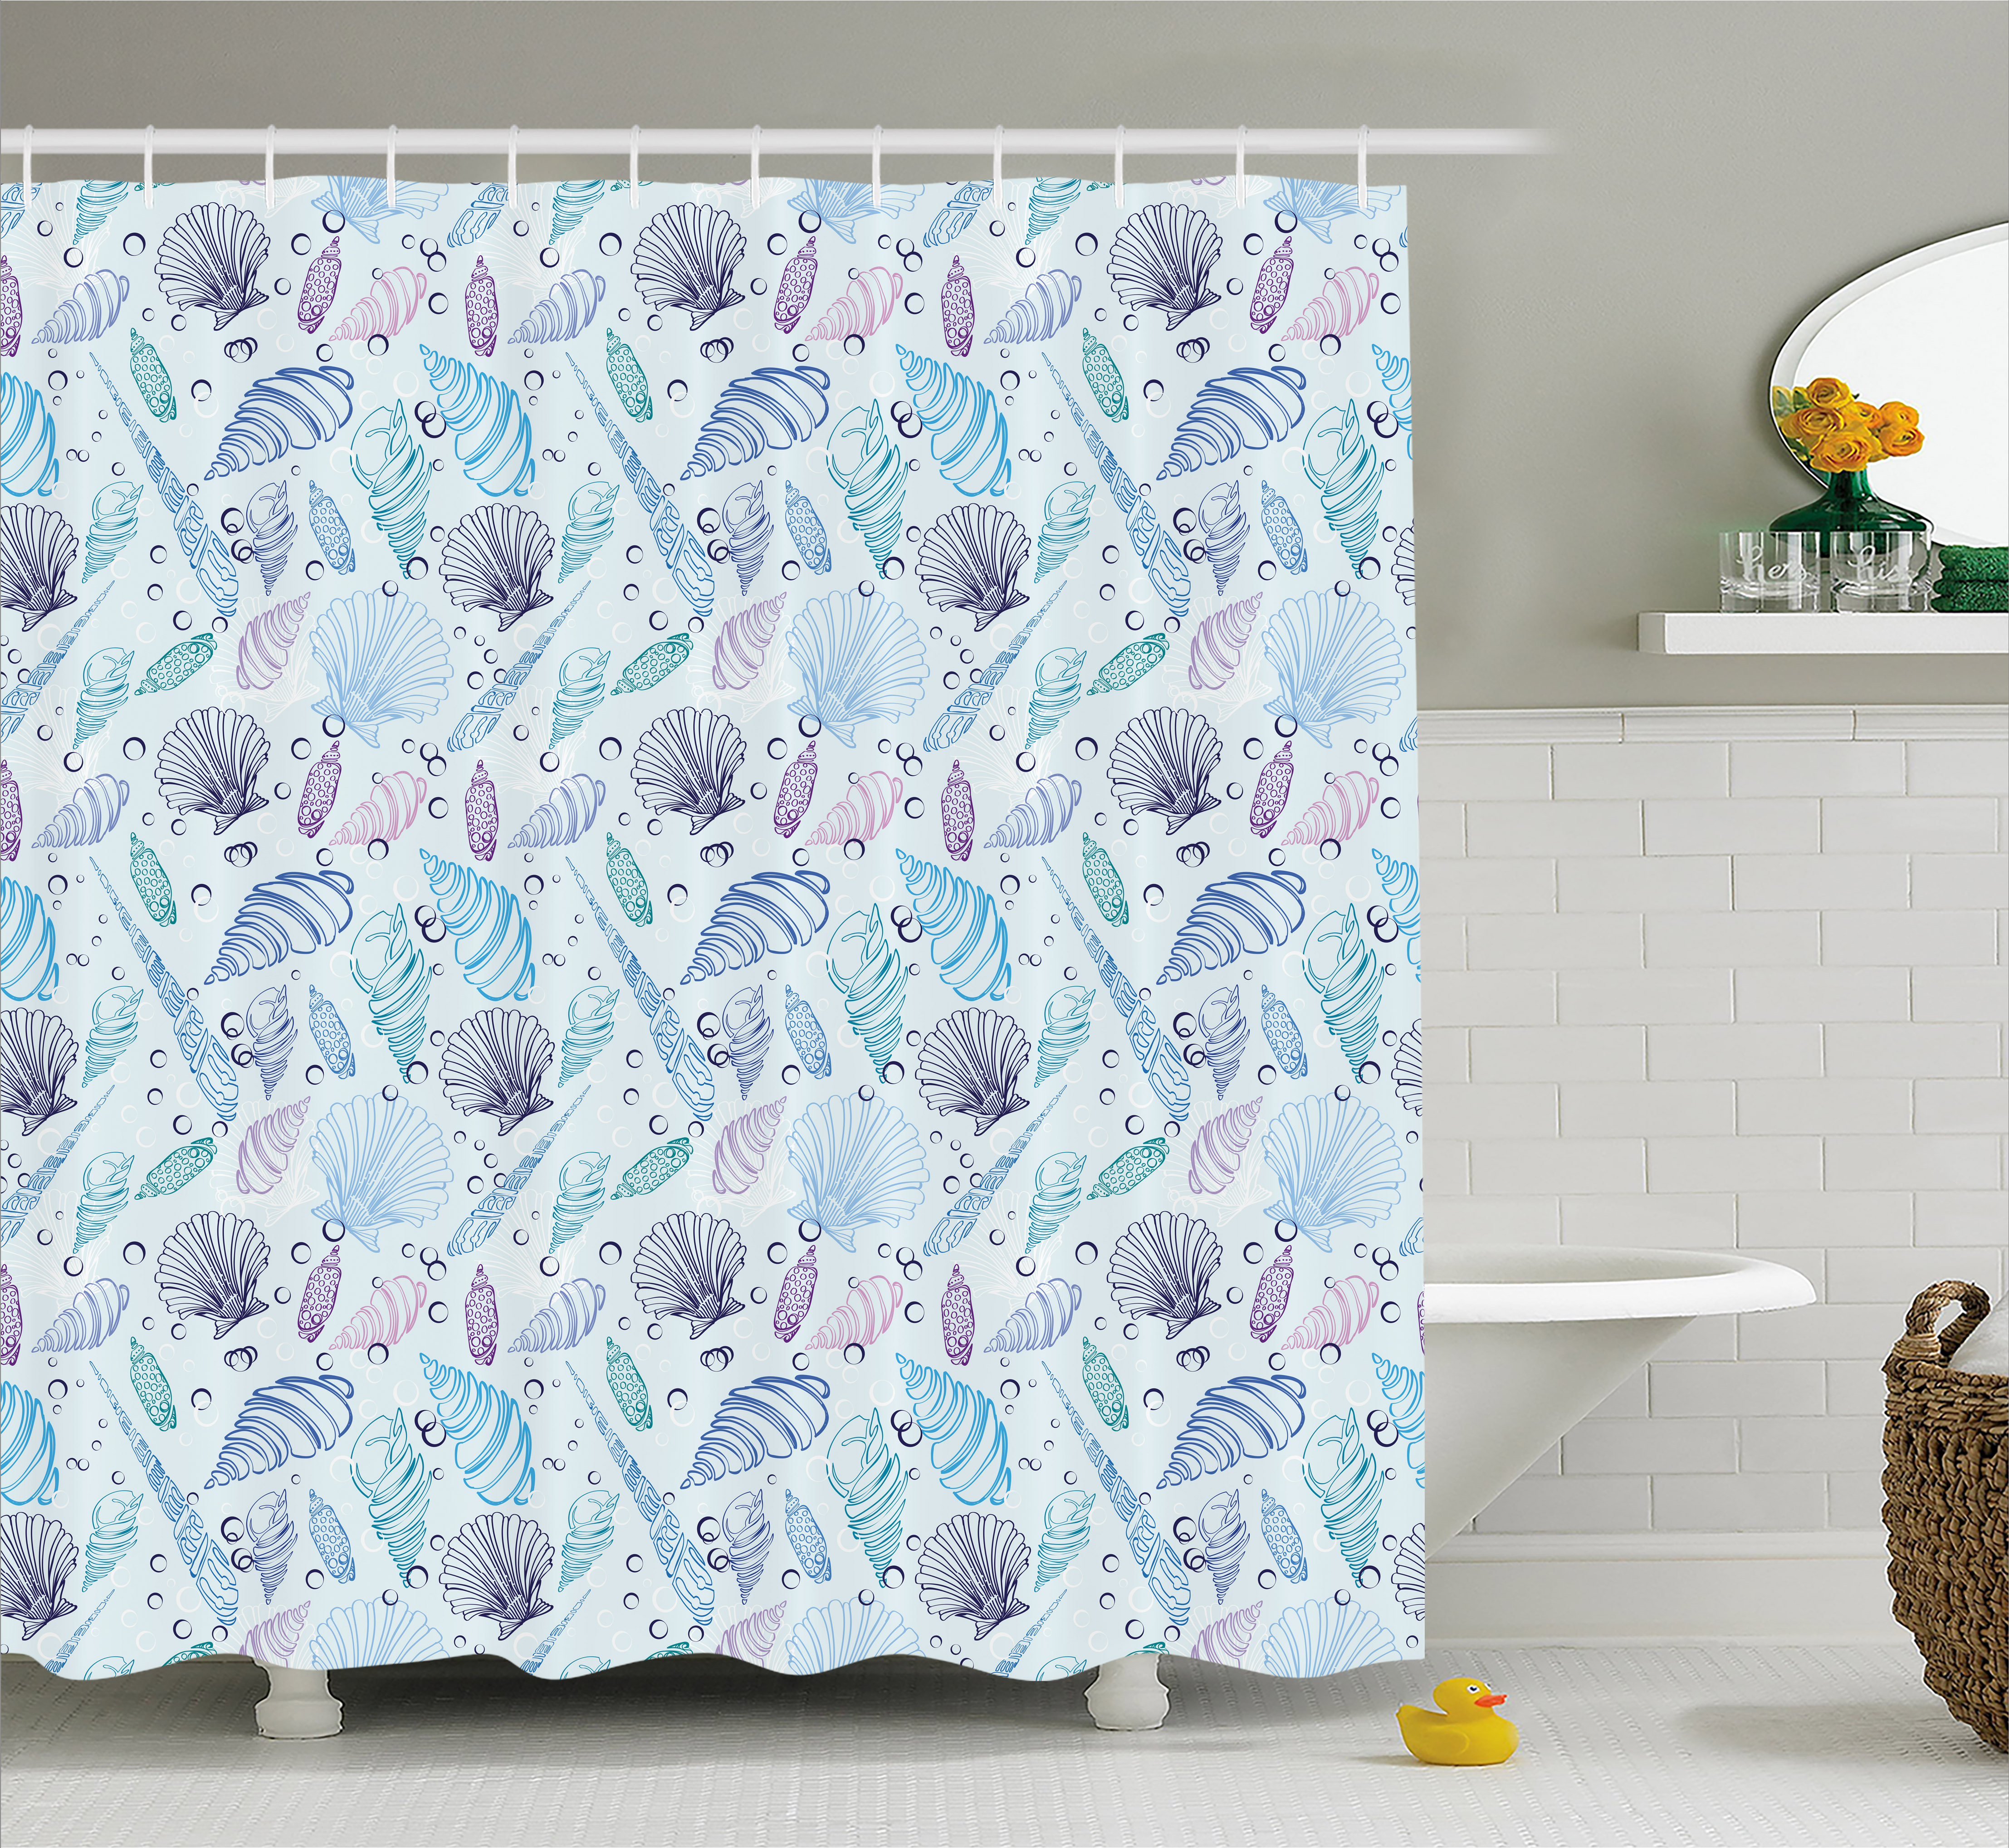 Nautical Shower Curtain, Various Sea Shell Pattern Underwater Bubbles Ocean Maritime Print, Fabric Bathroom Set with Hooks, Indigo Pale Blue Purple, by Ambesonne